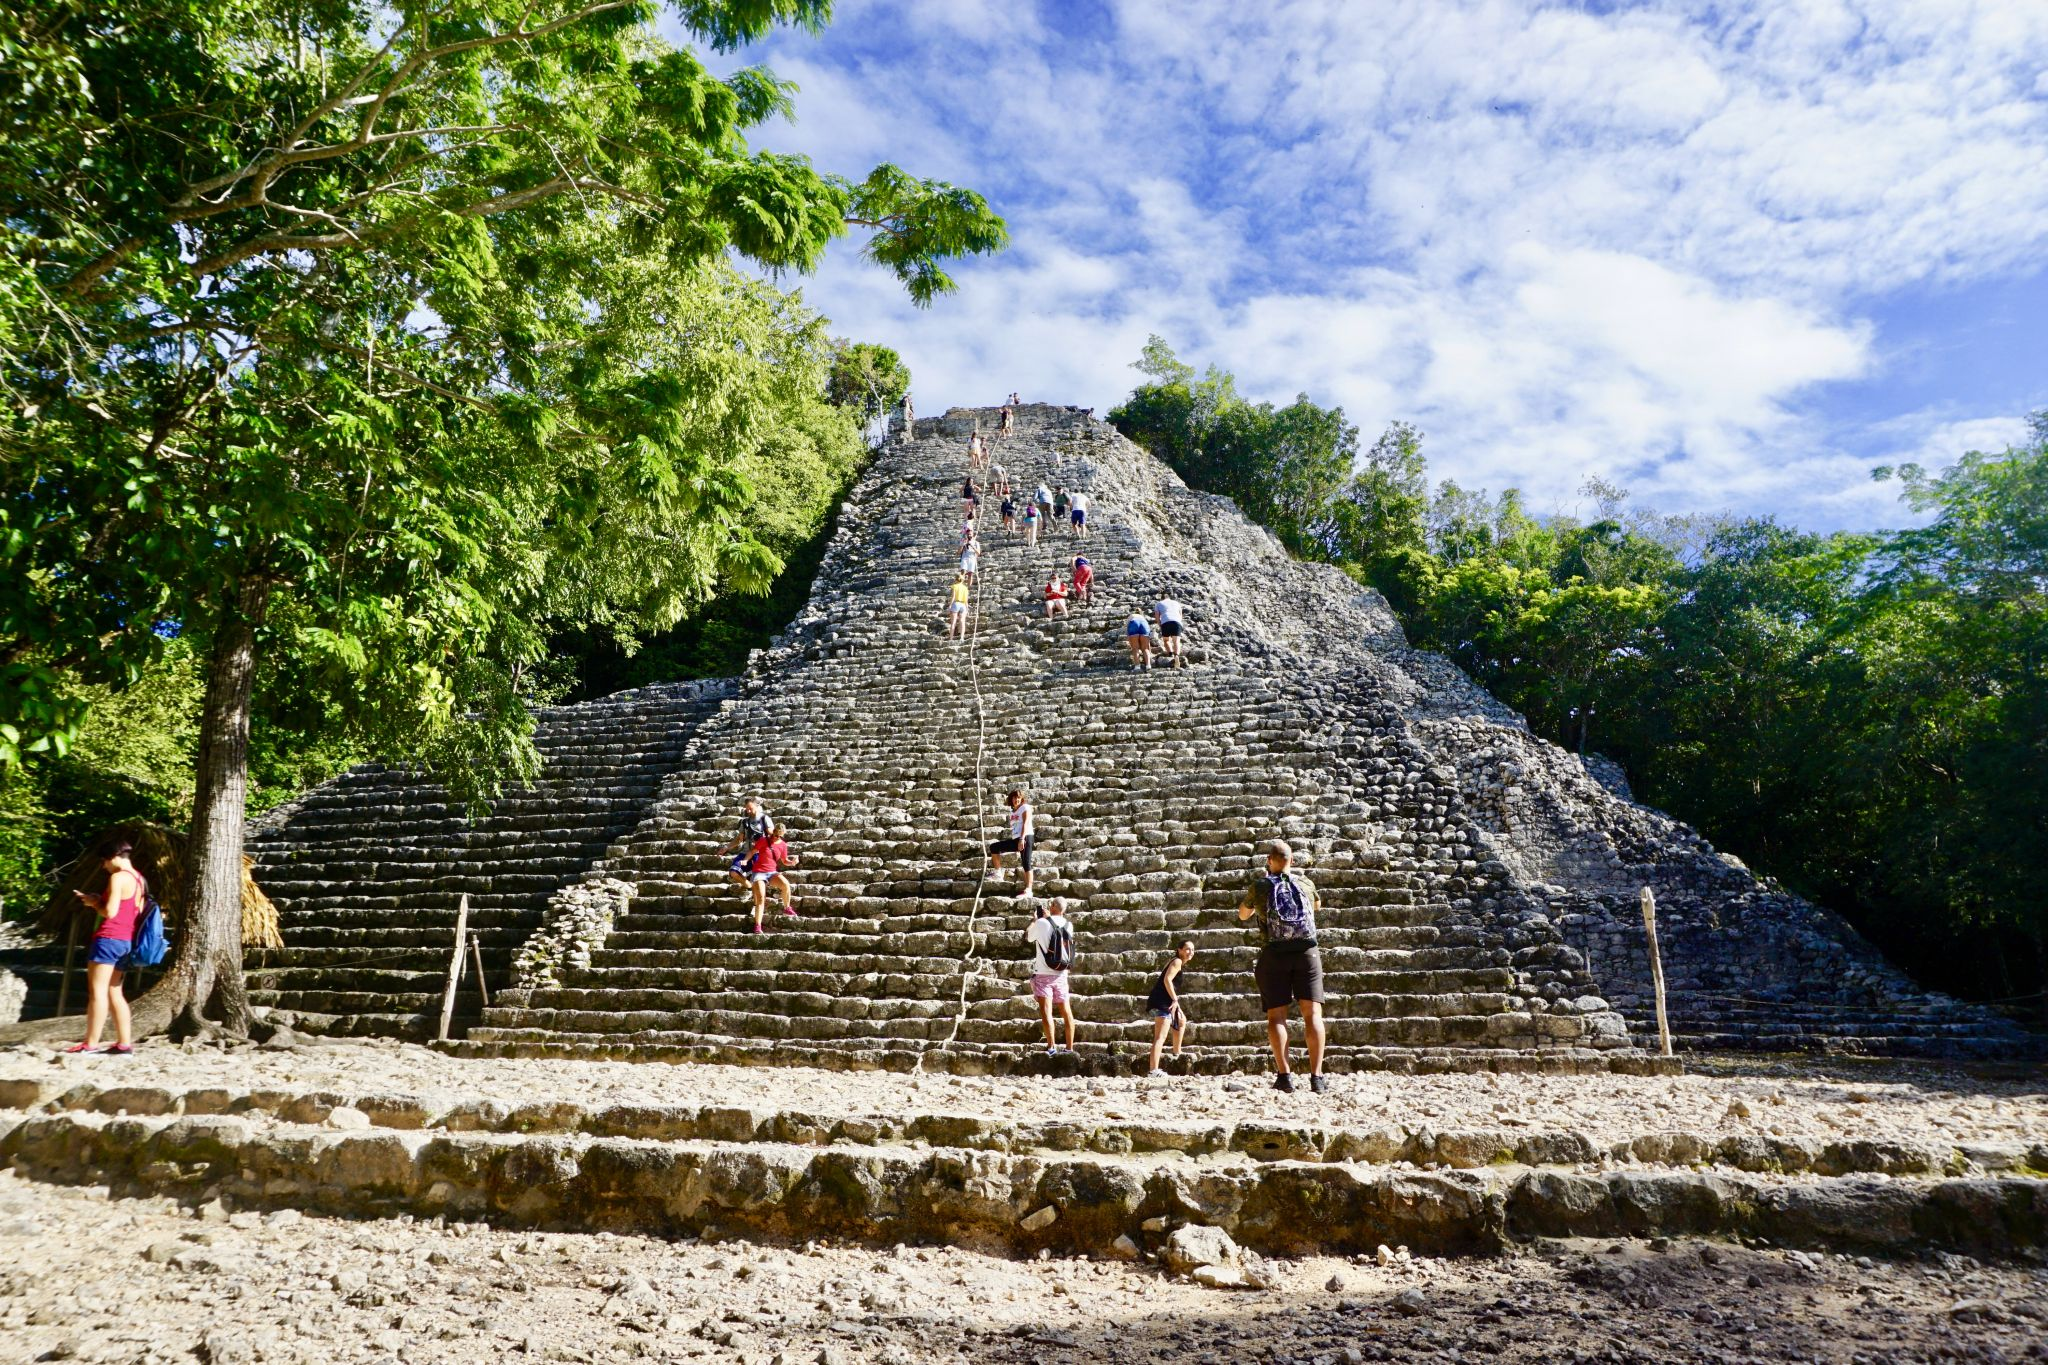 Climbing the Mayan pyramid Nohoch Mul in Coba